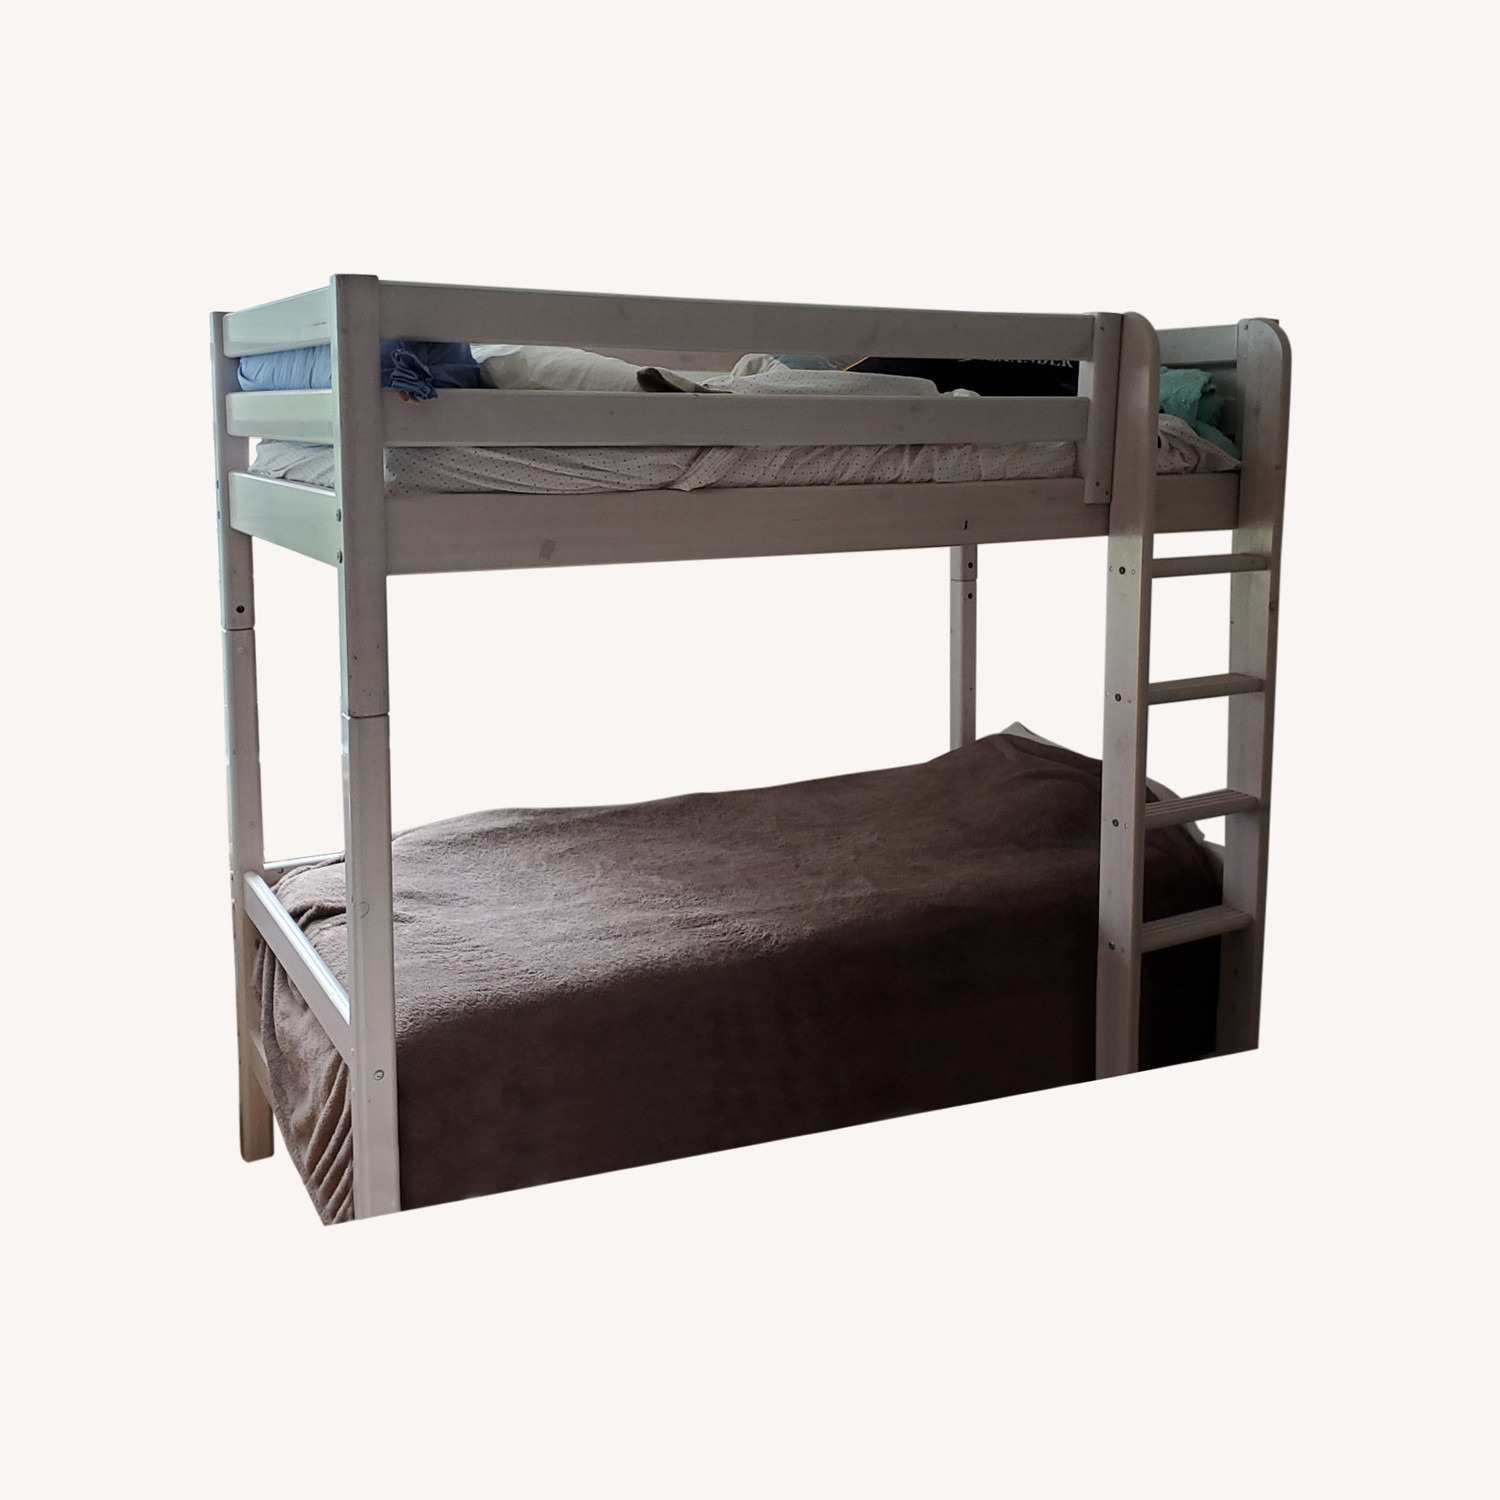 Flexa Classic High Bed with Straight Ladder - image-14